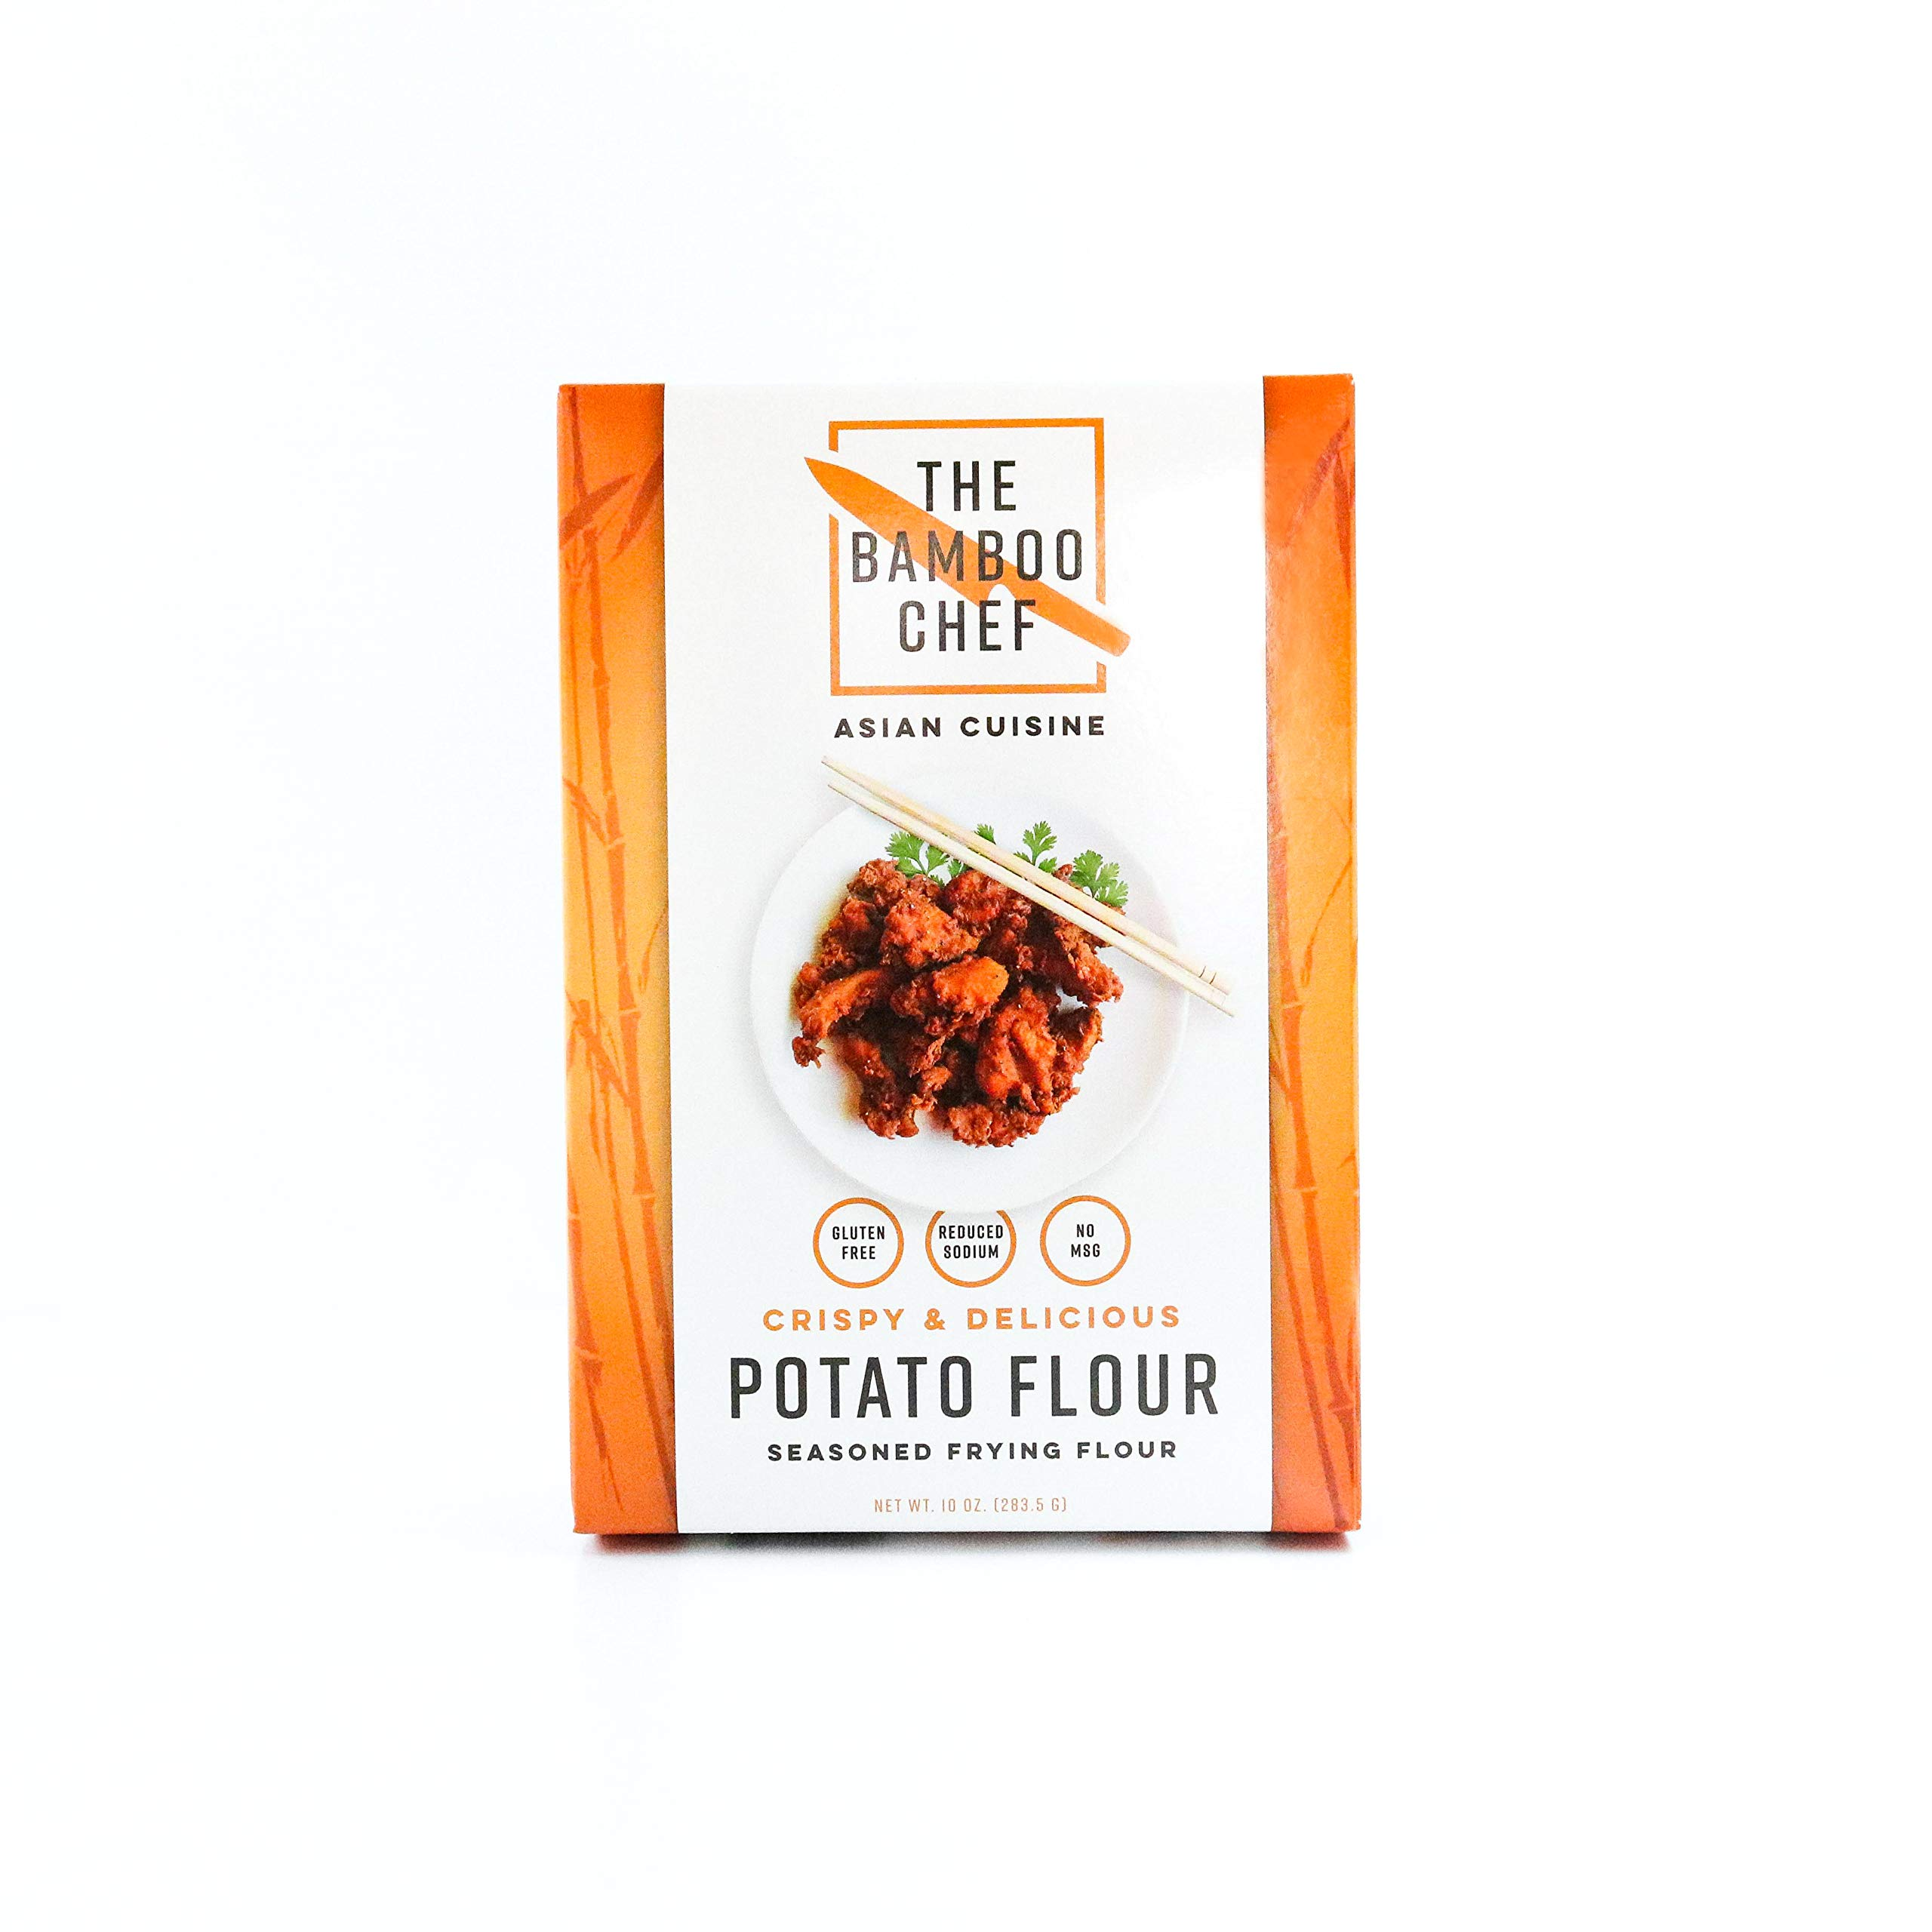 The Bamboo Chef Asian Cuisine Potato Flour Seasoned Frying Flour Gluten Free No MSG (Case of 6) by The Bamboo Chef